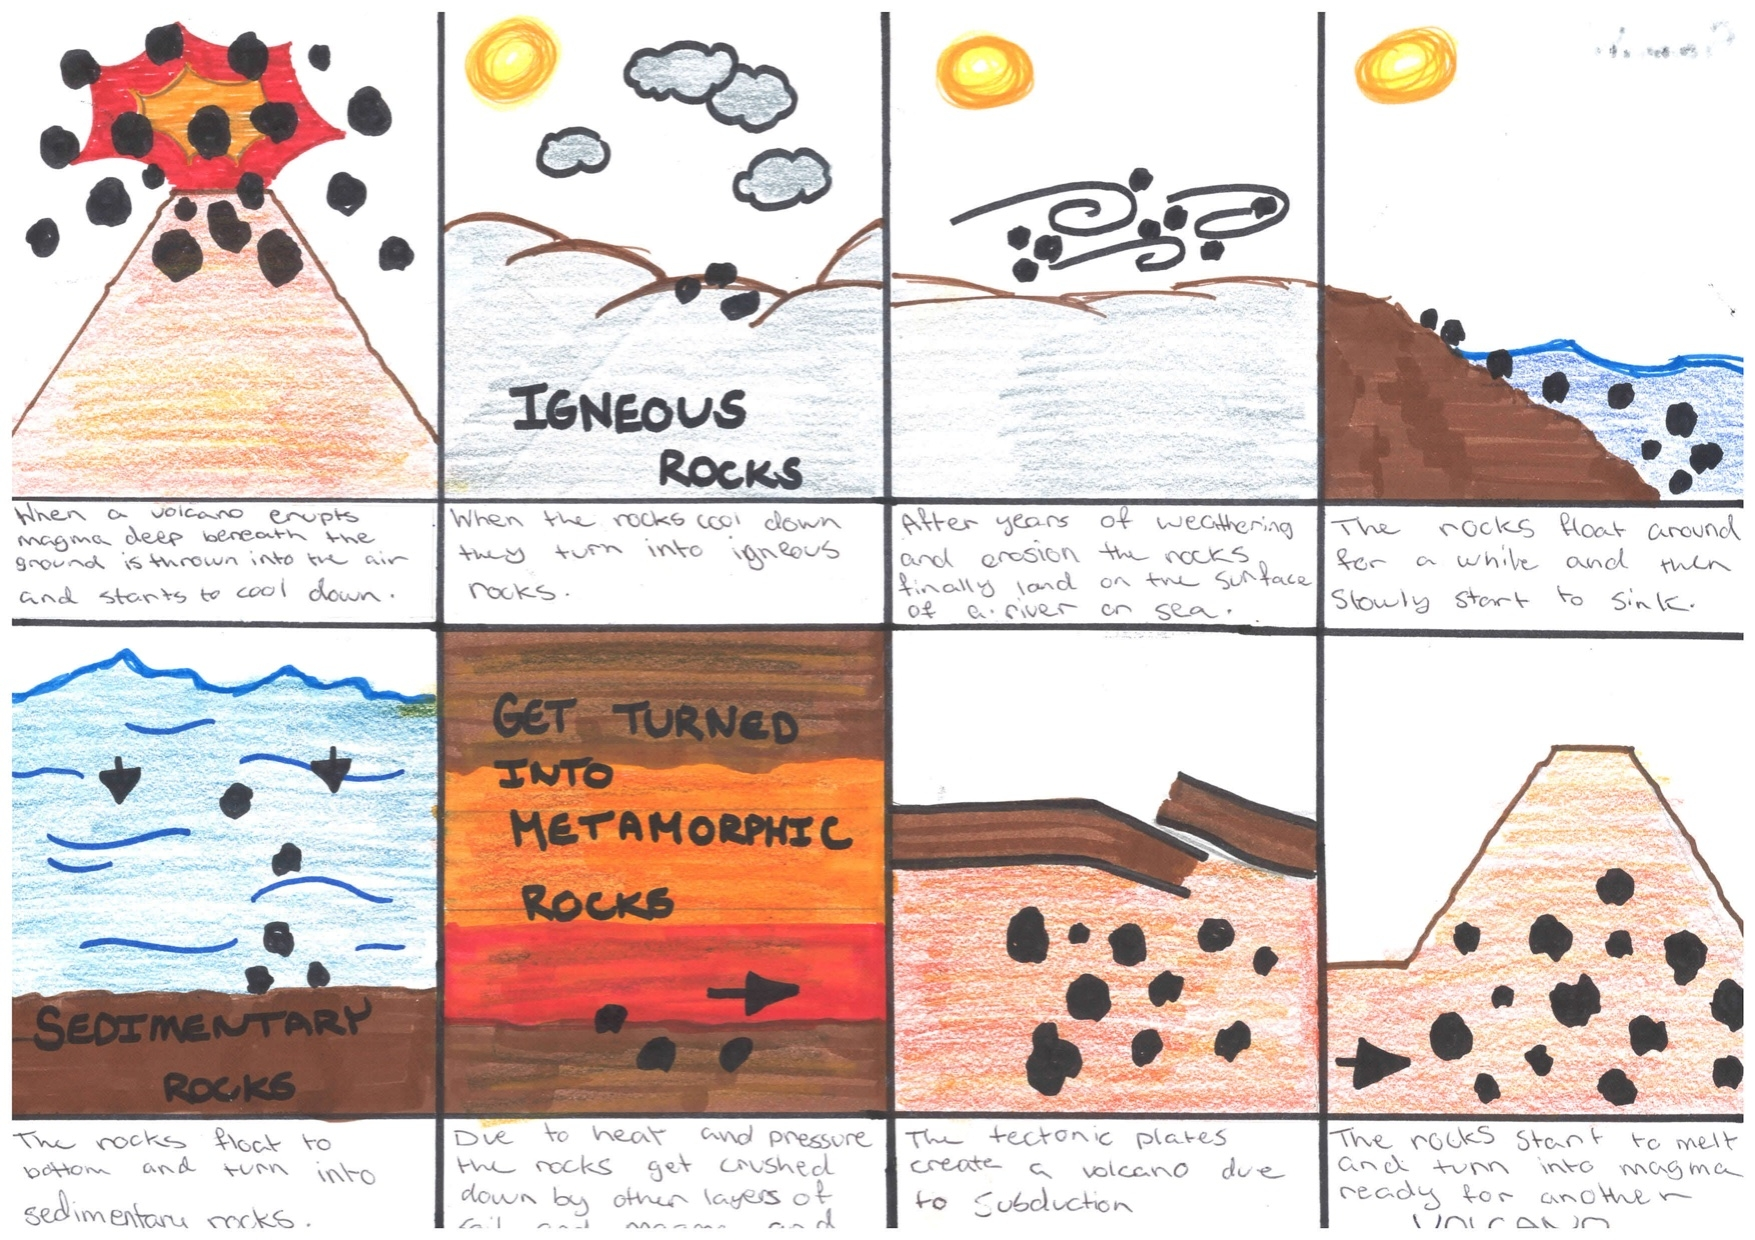 rock cycle comic strip  Year 6 - Rock Cycle Comic Strips — nationsinsoc.org